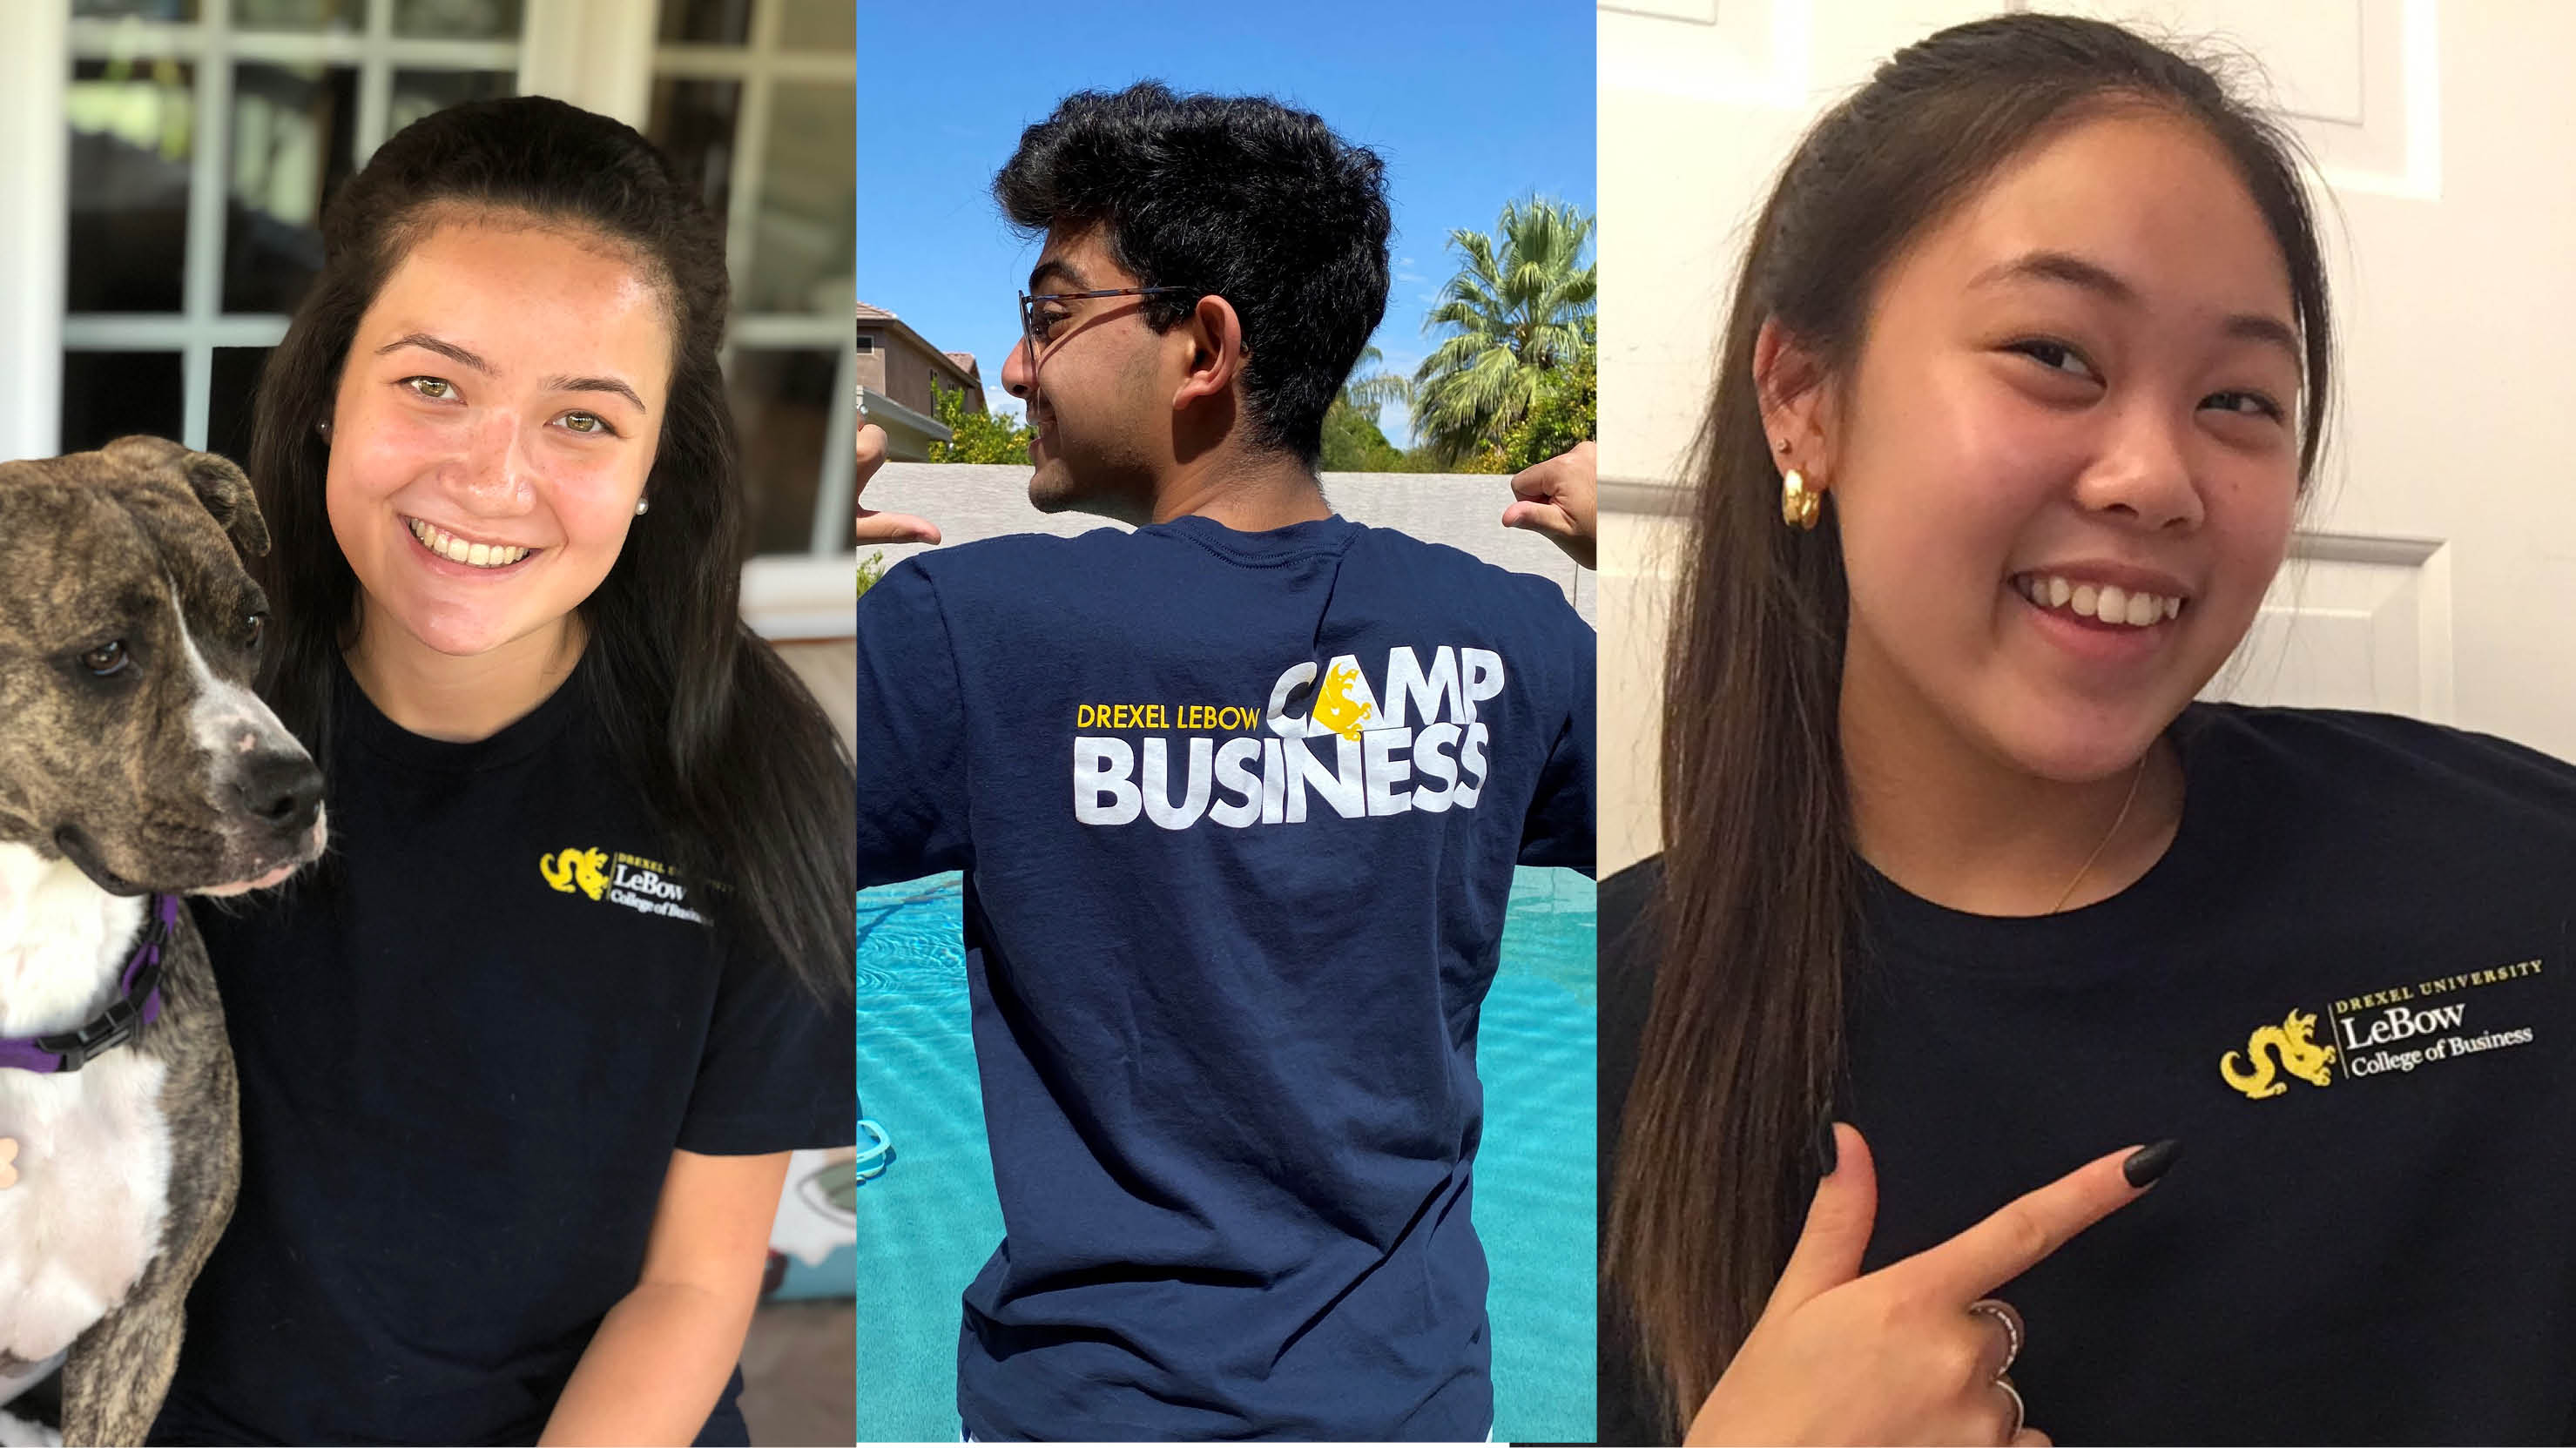 Three high school students wearing Drexel LeBow Camp Business shirts